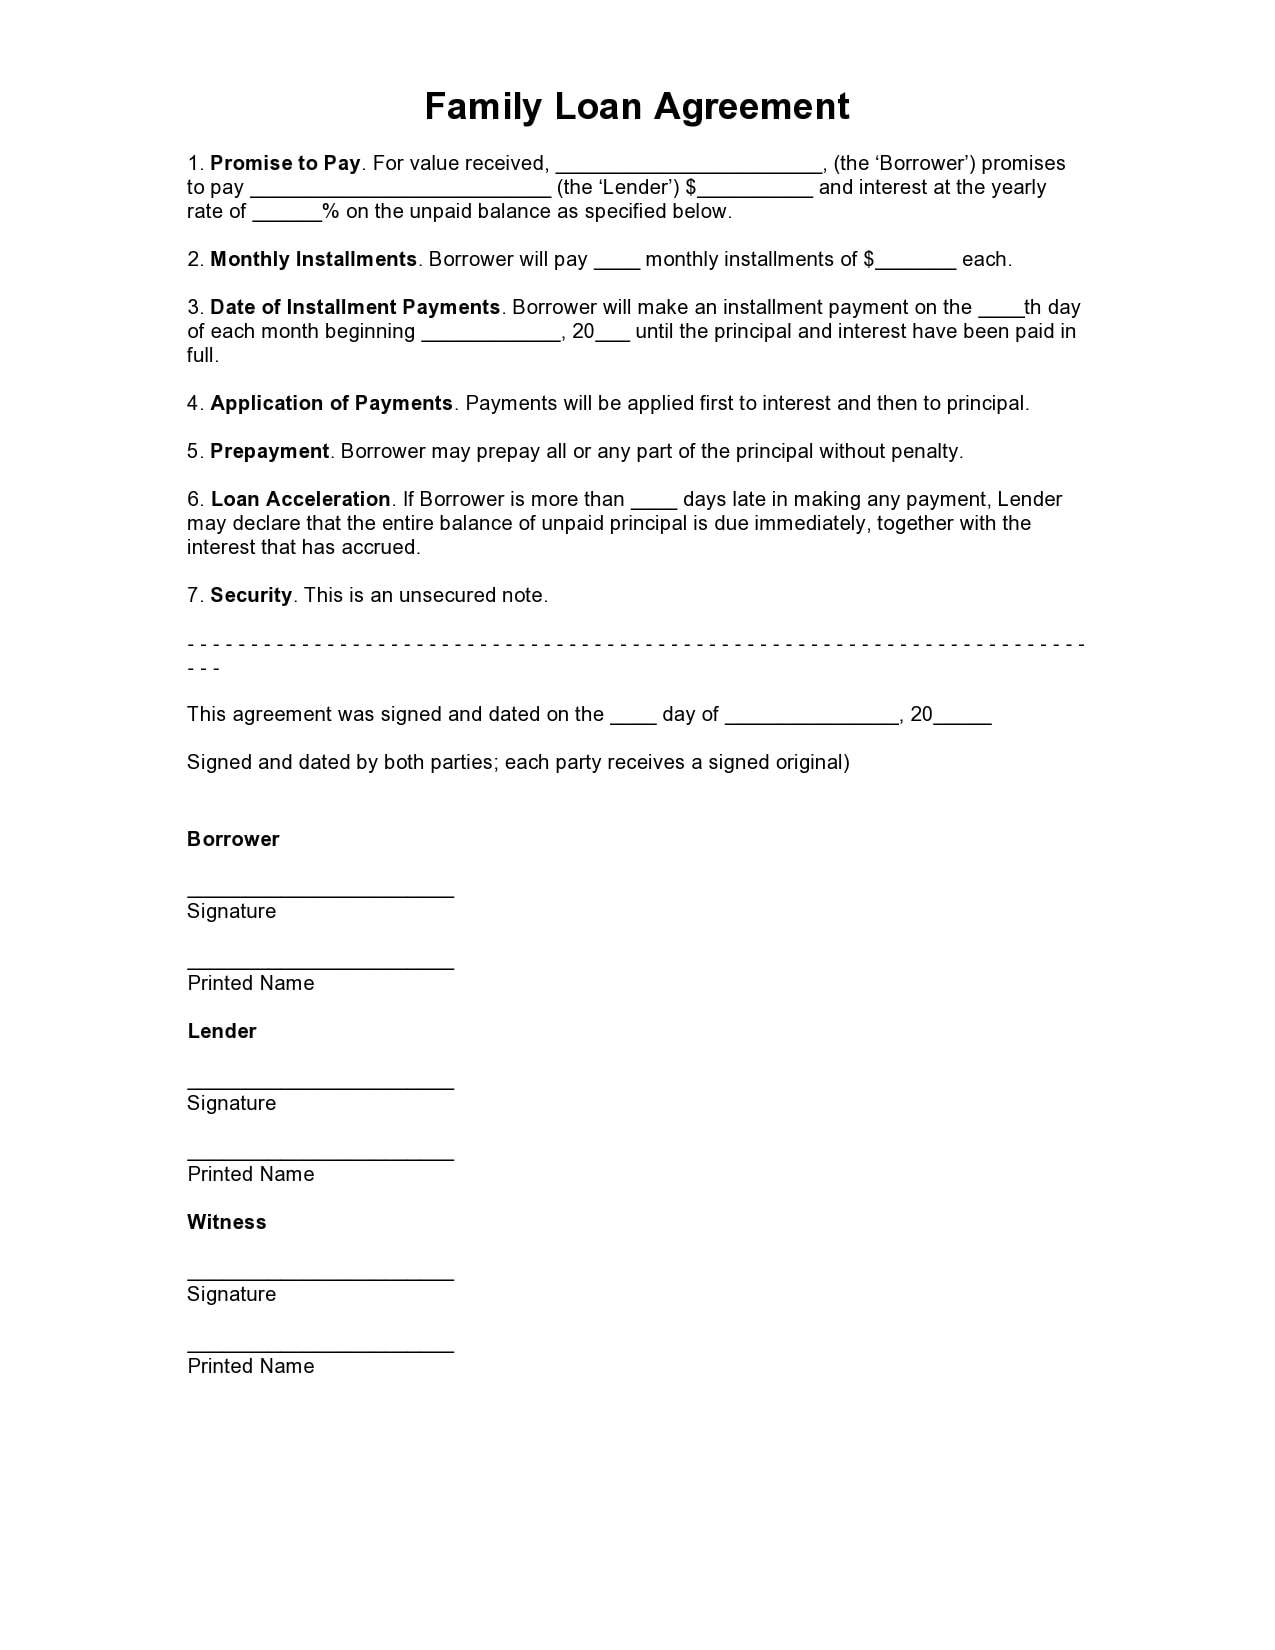 The borrower promises to pay back the loan in line with a repayment schedule (regular payments or a lump sum). 29 Simple Family Loan Agreement Templates 100 Free